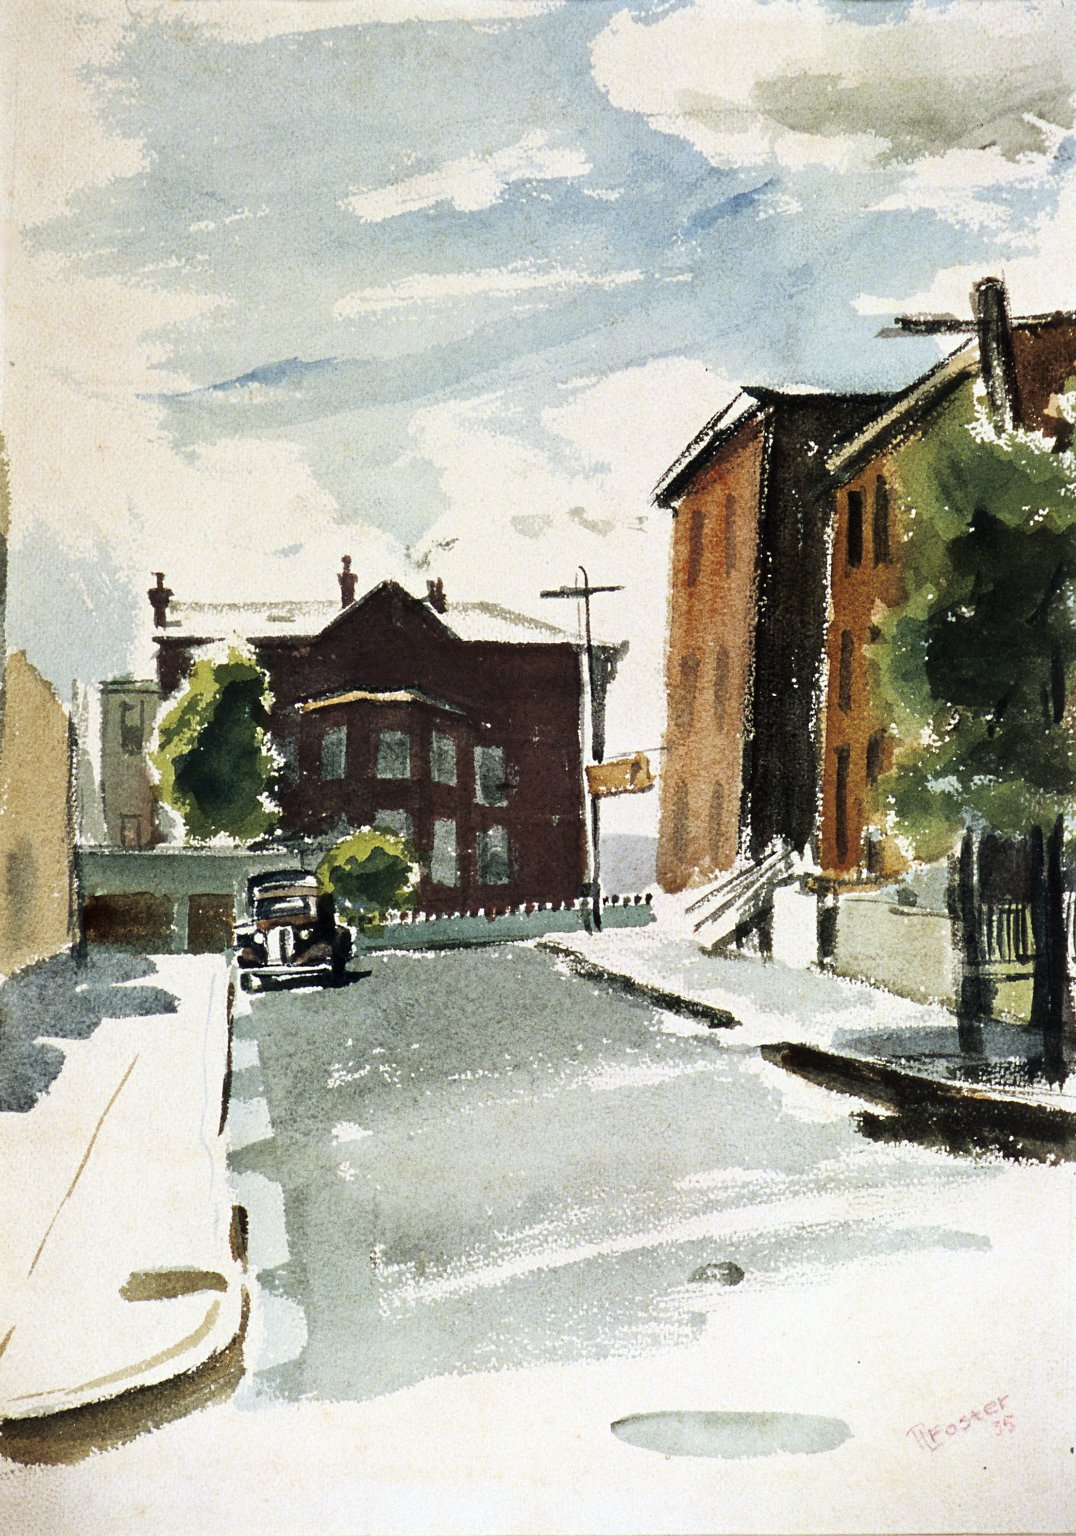 Street Scene with Car